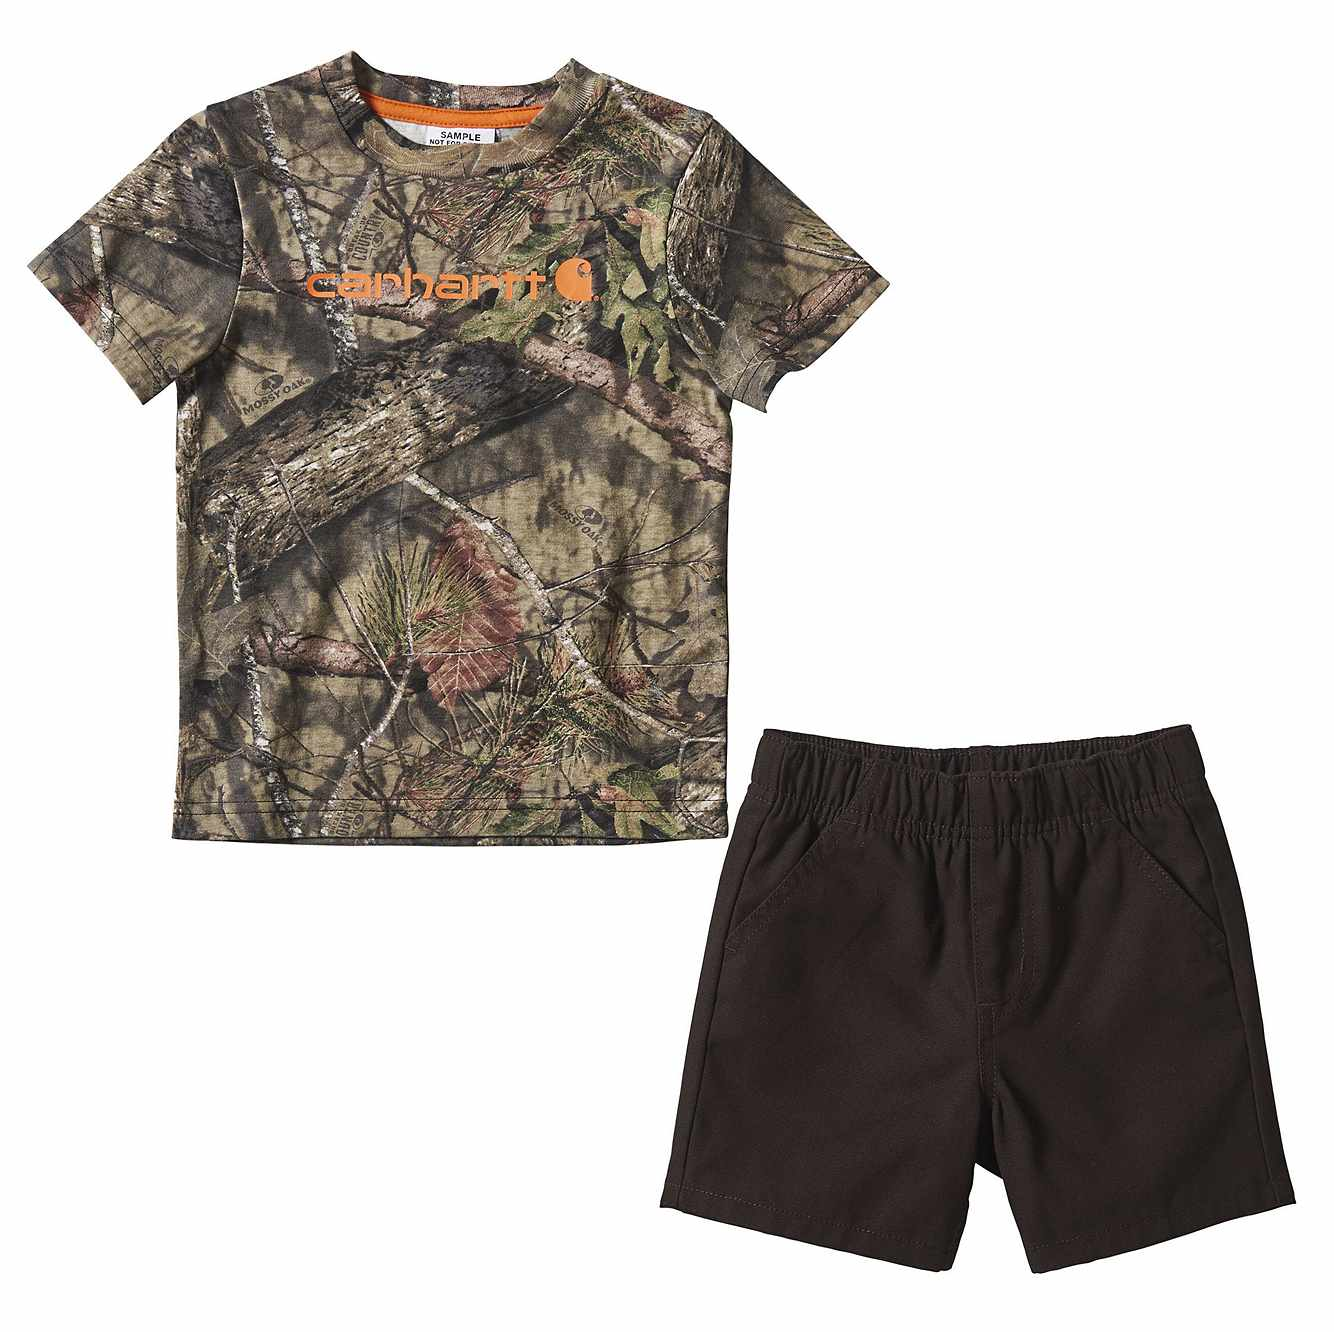 Picture of 2-Piece Camo Short Set in Mustang Brown